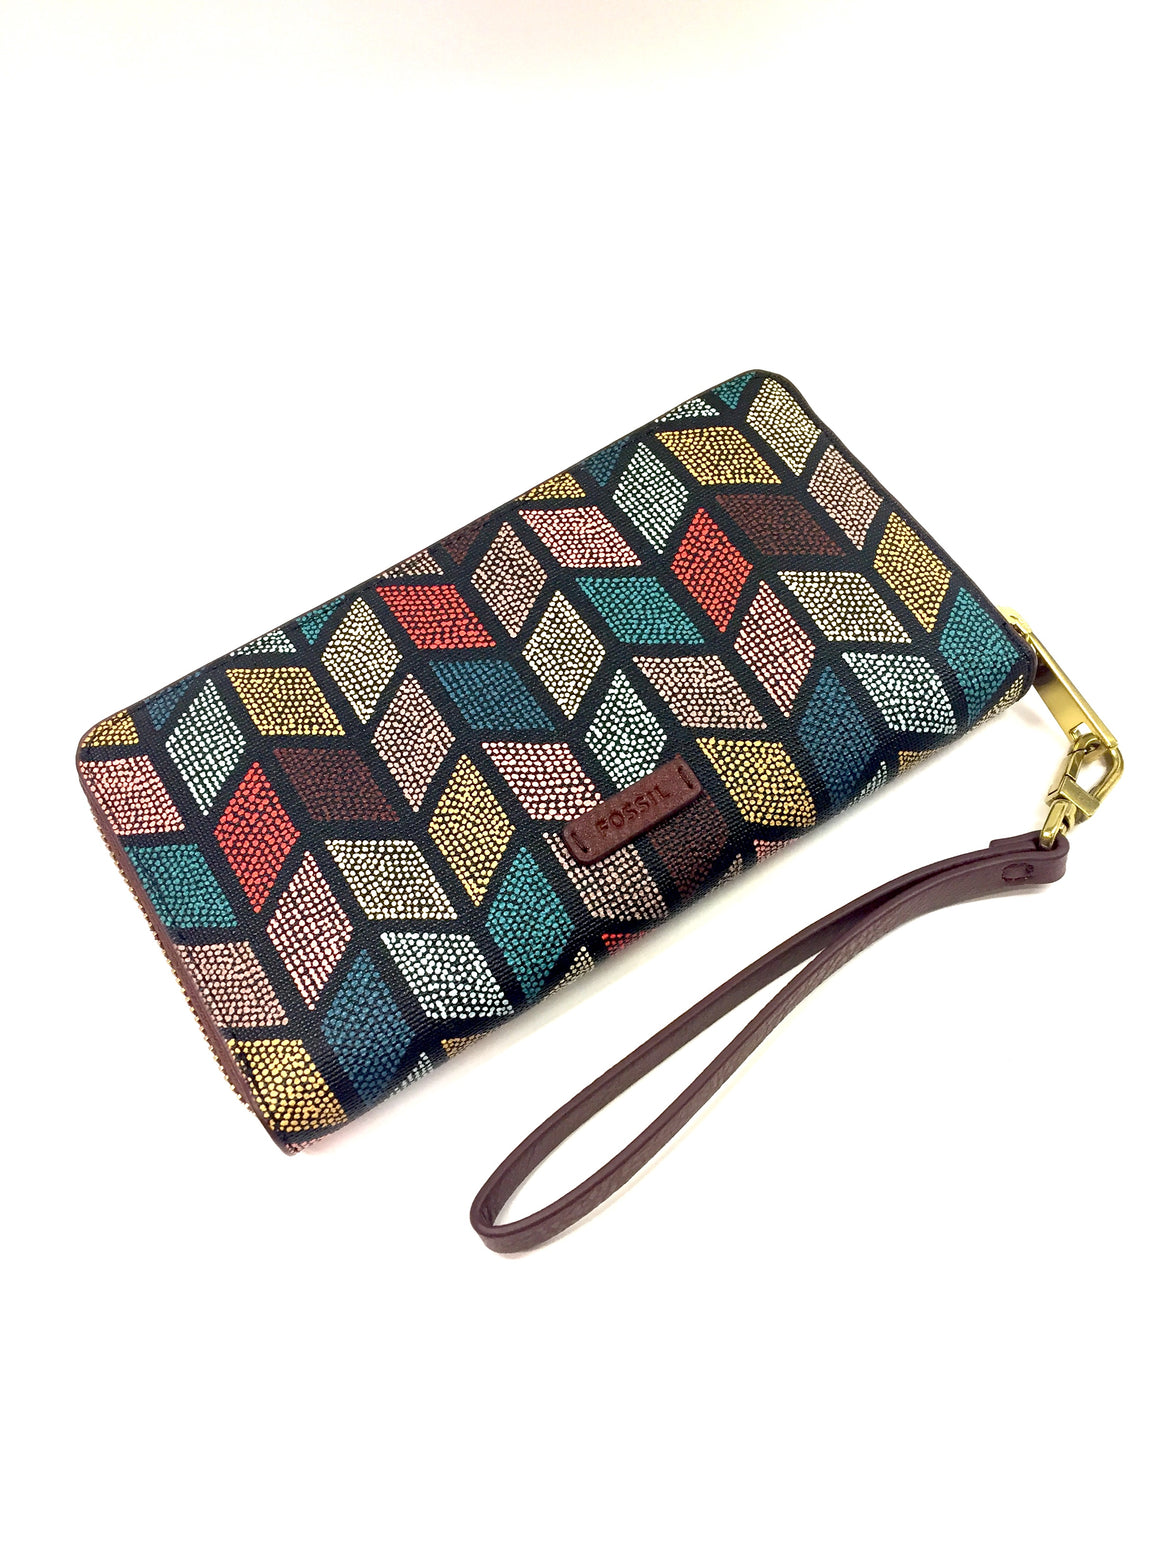 New FOSSIL Brown Synthetic Leather/Multicolor Canvas Zip-Around Wallet/Wristlet